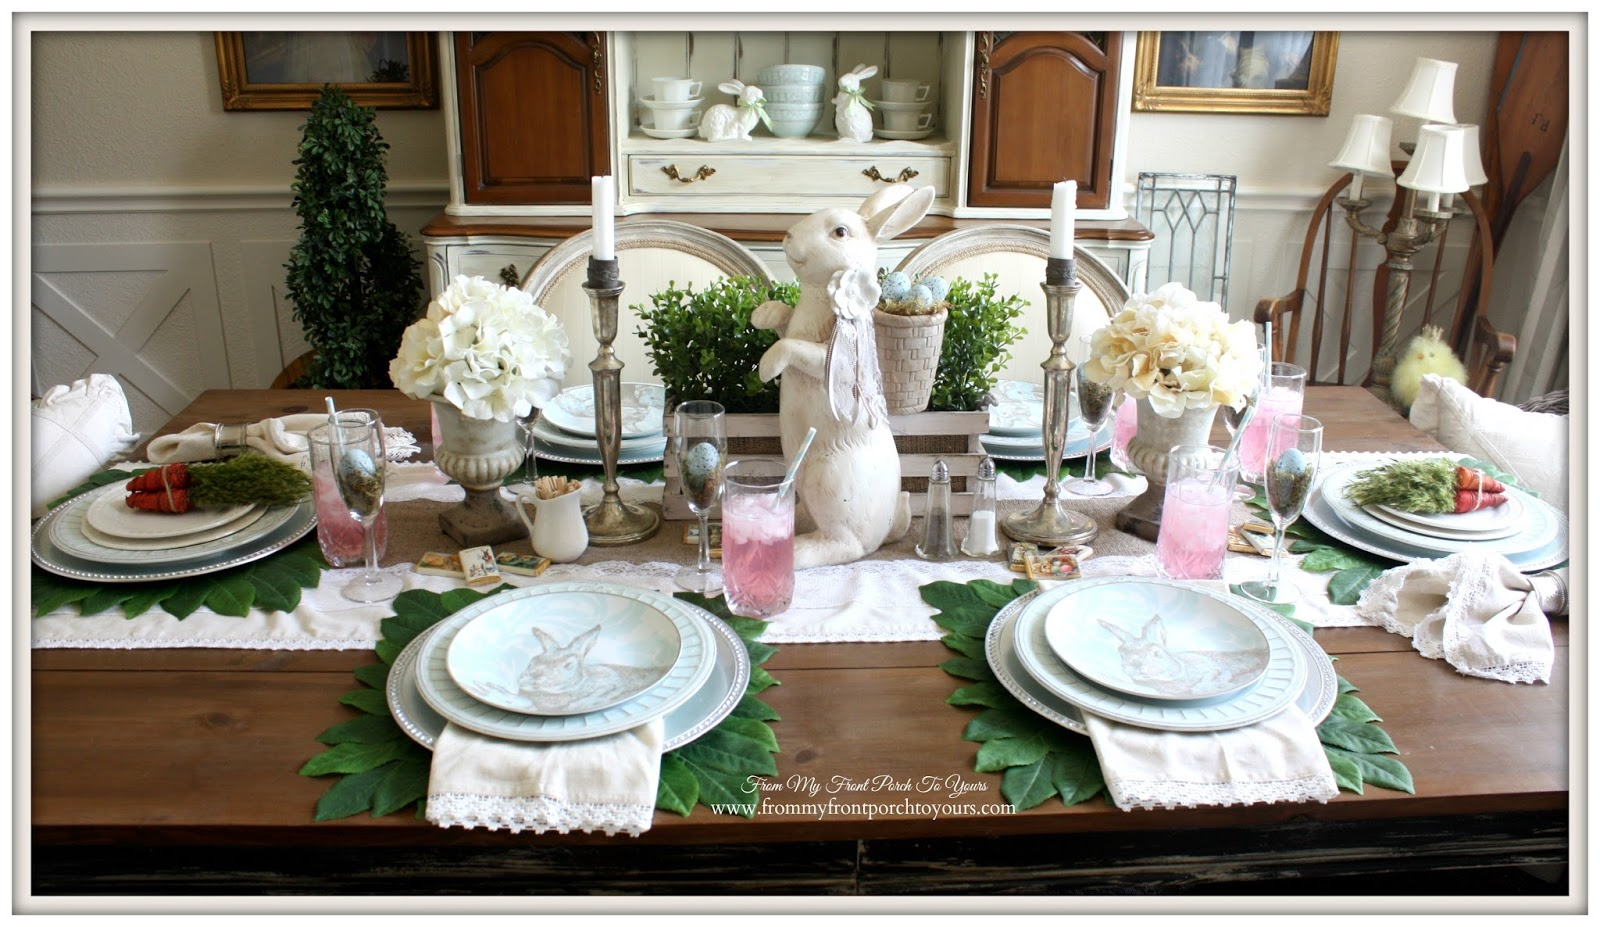 Easter Tablescape-French Farmhouse Easter Dining Room- From My Front Porch To Yours